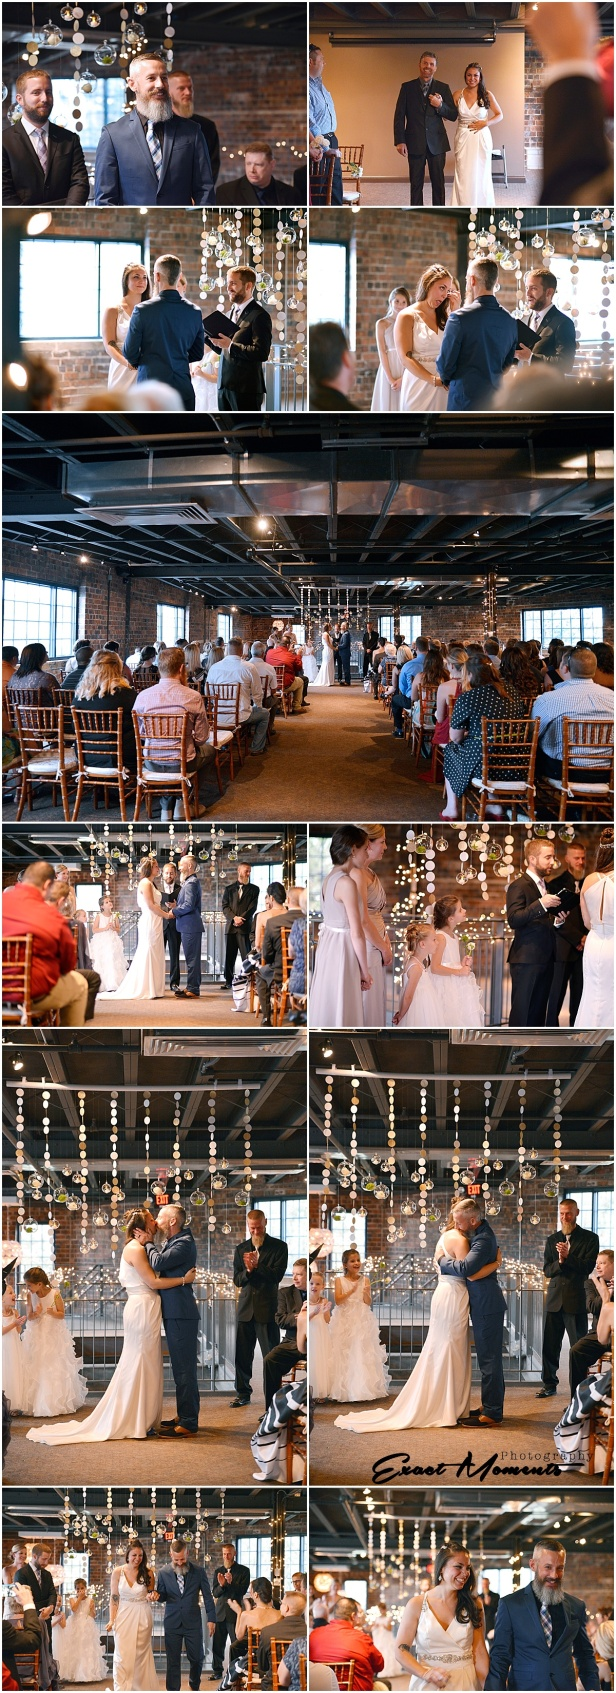 Wedding ceremony at Dock580